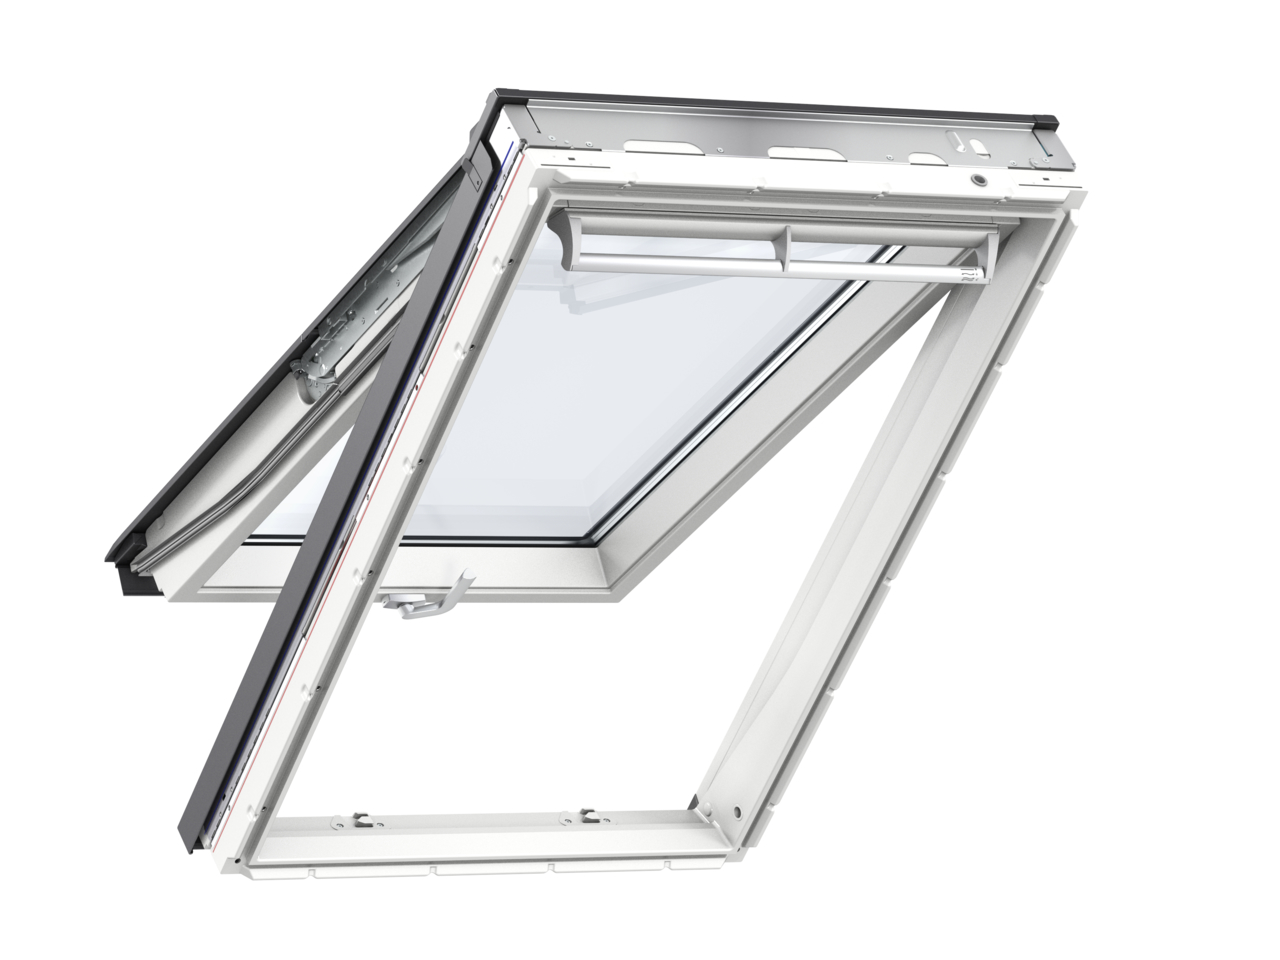 Velux GPU MK04 780 x 980mm Top Hung 34Pane Roof Window - White Polyurethane